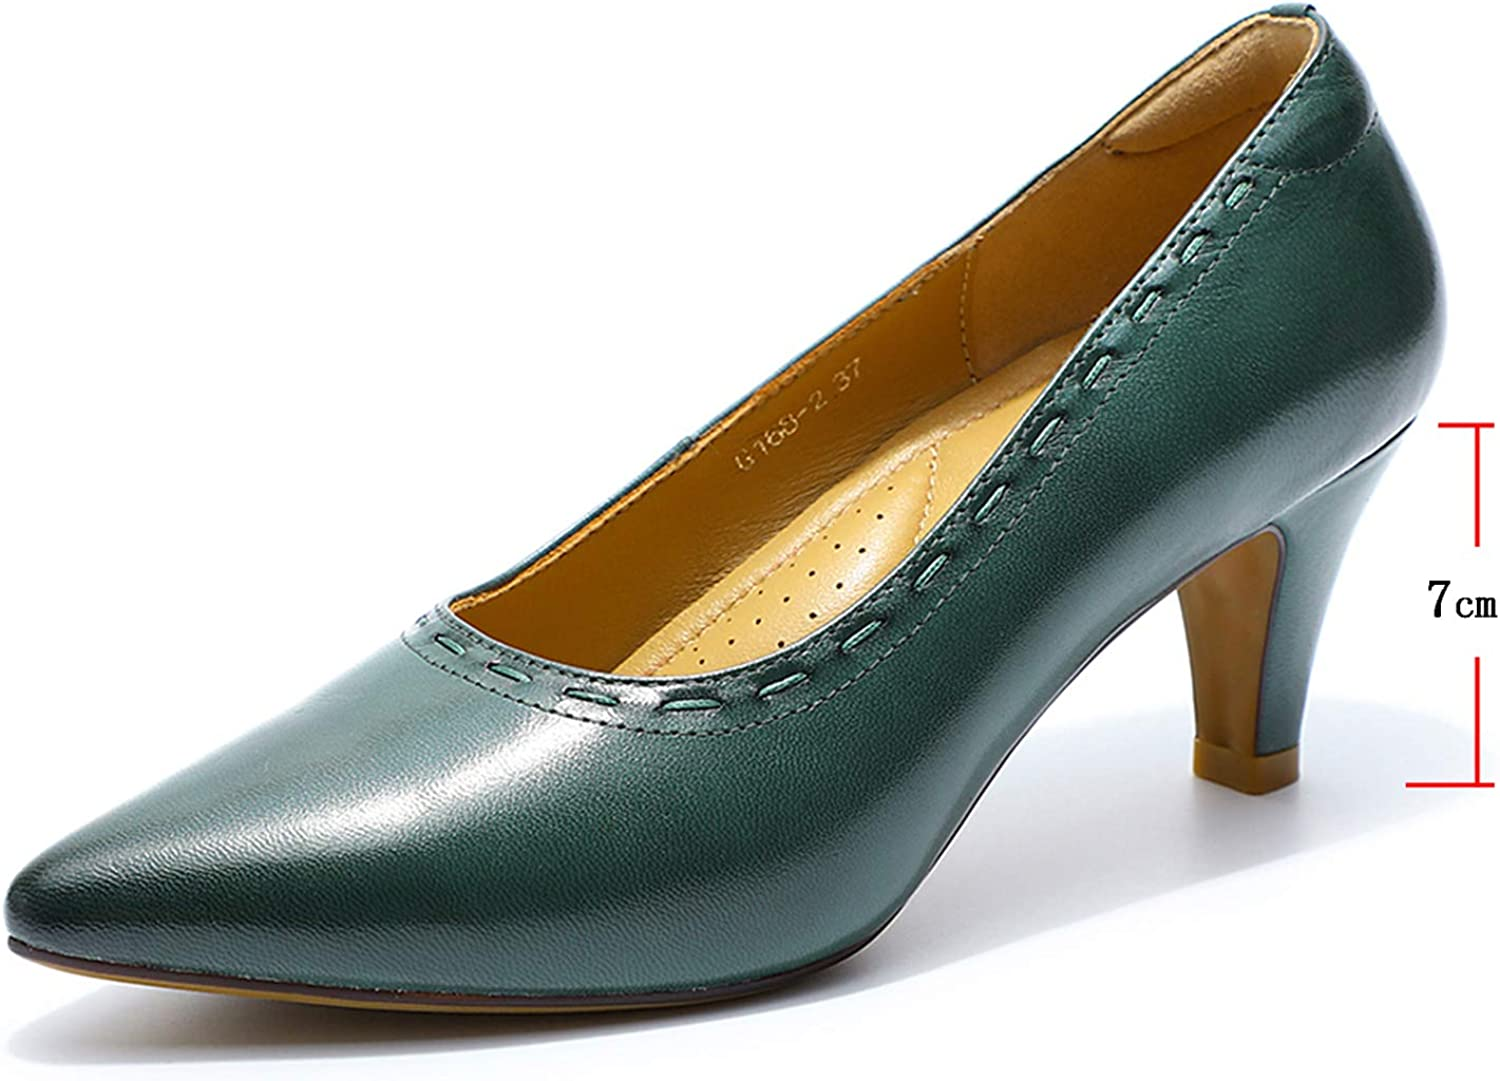 Mona flying Womens Solid Leather Pointed Toe Dress Pumps High Heels for Work Party